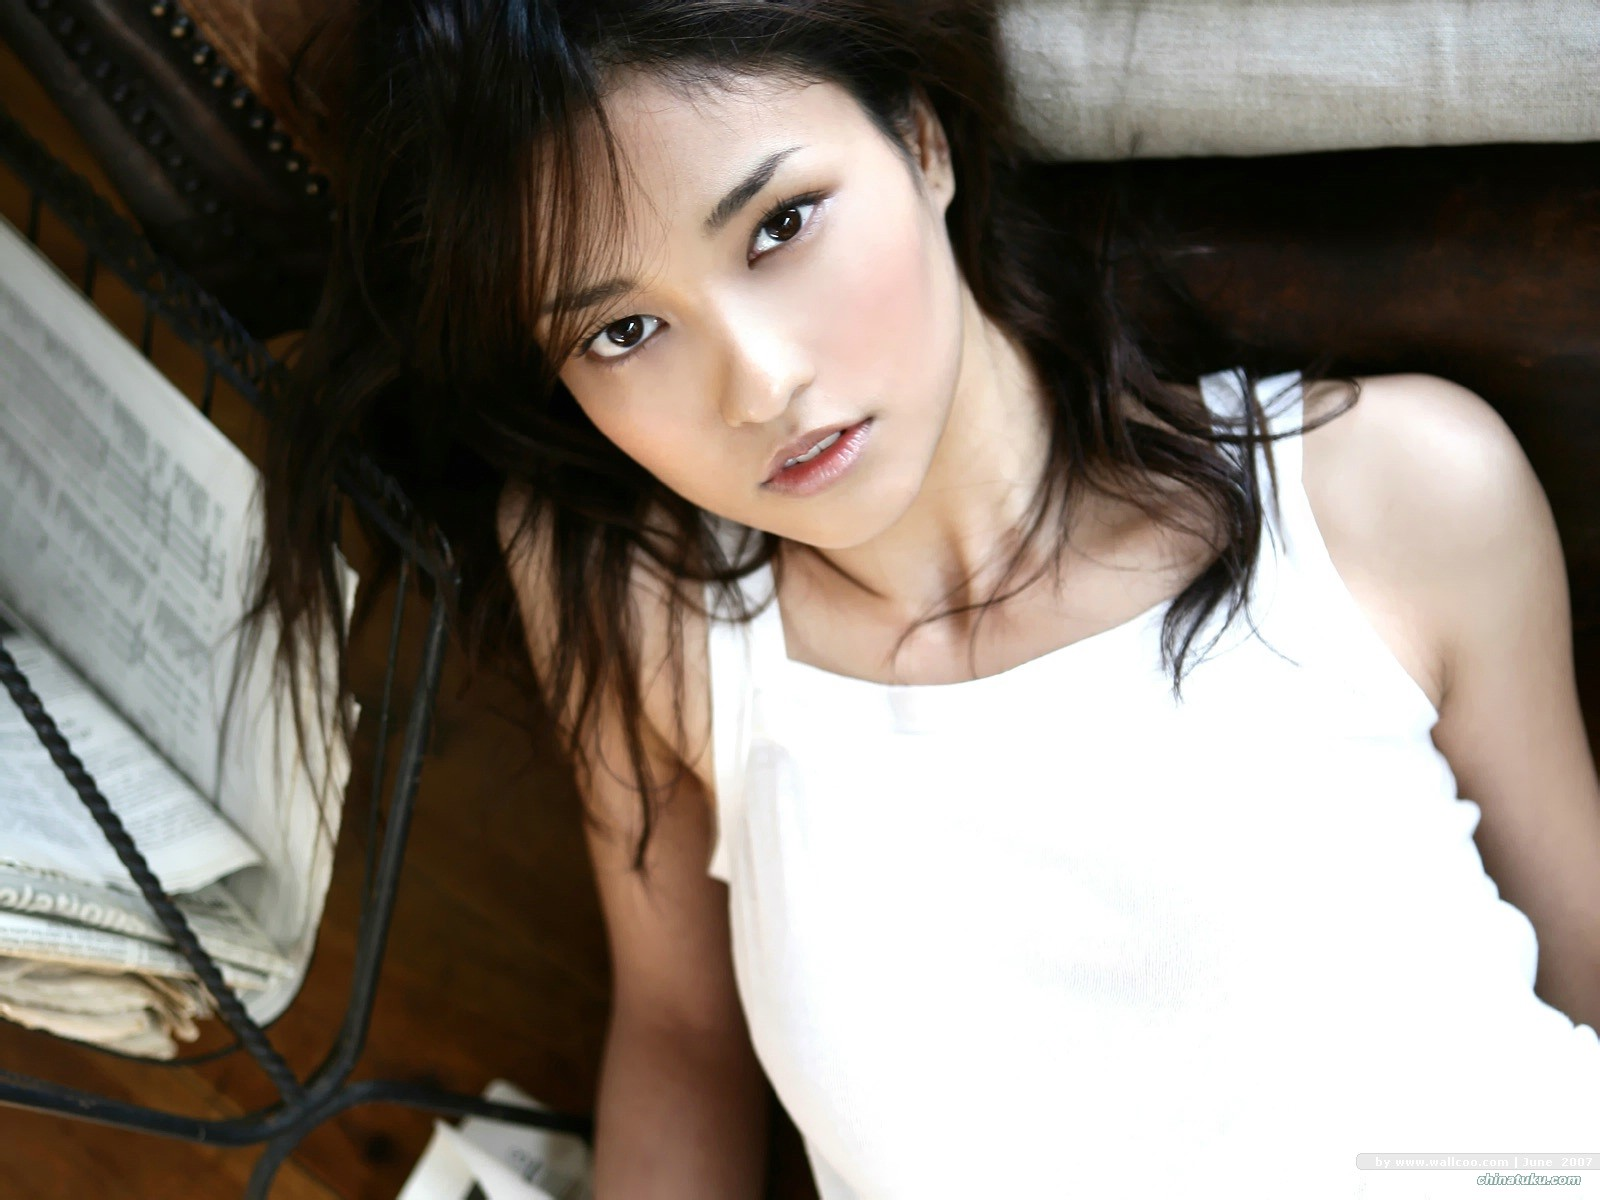 Japan-Actress-Kuroki - Click here to view Full Image